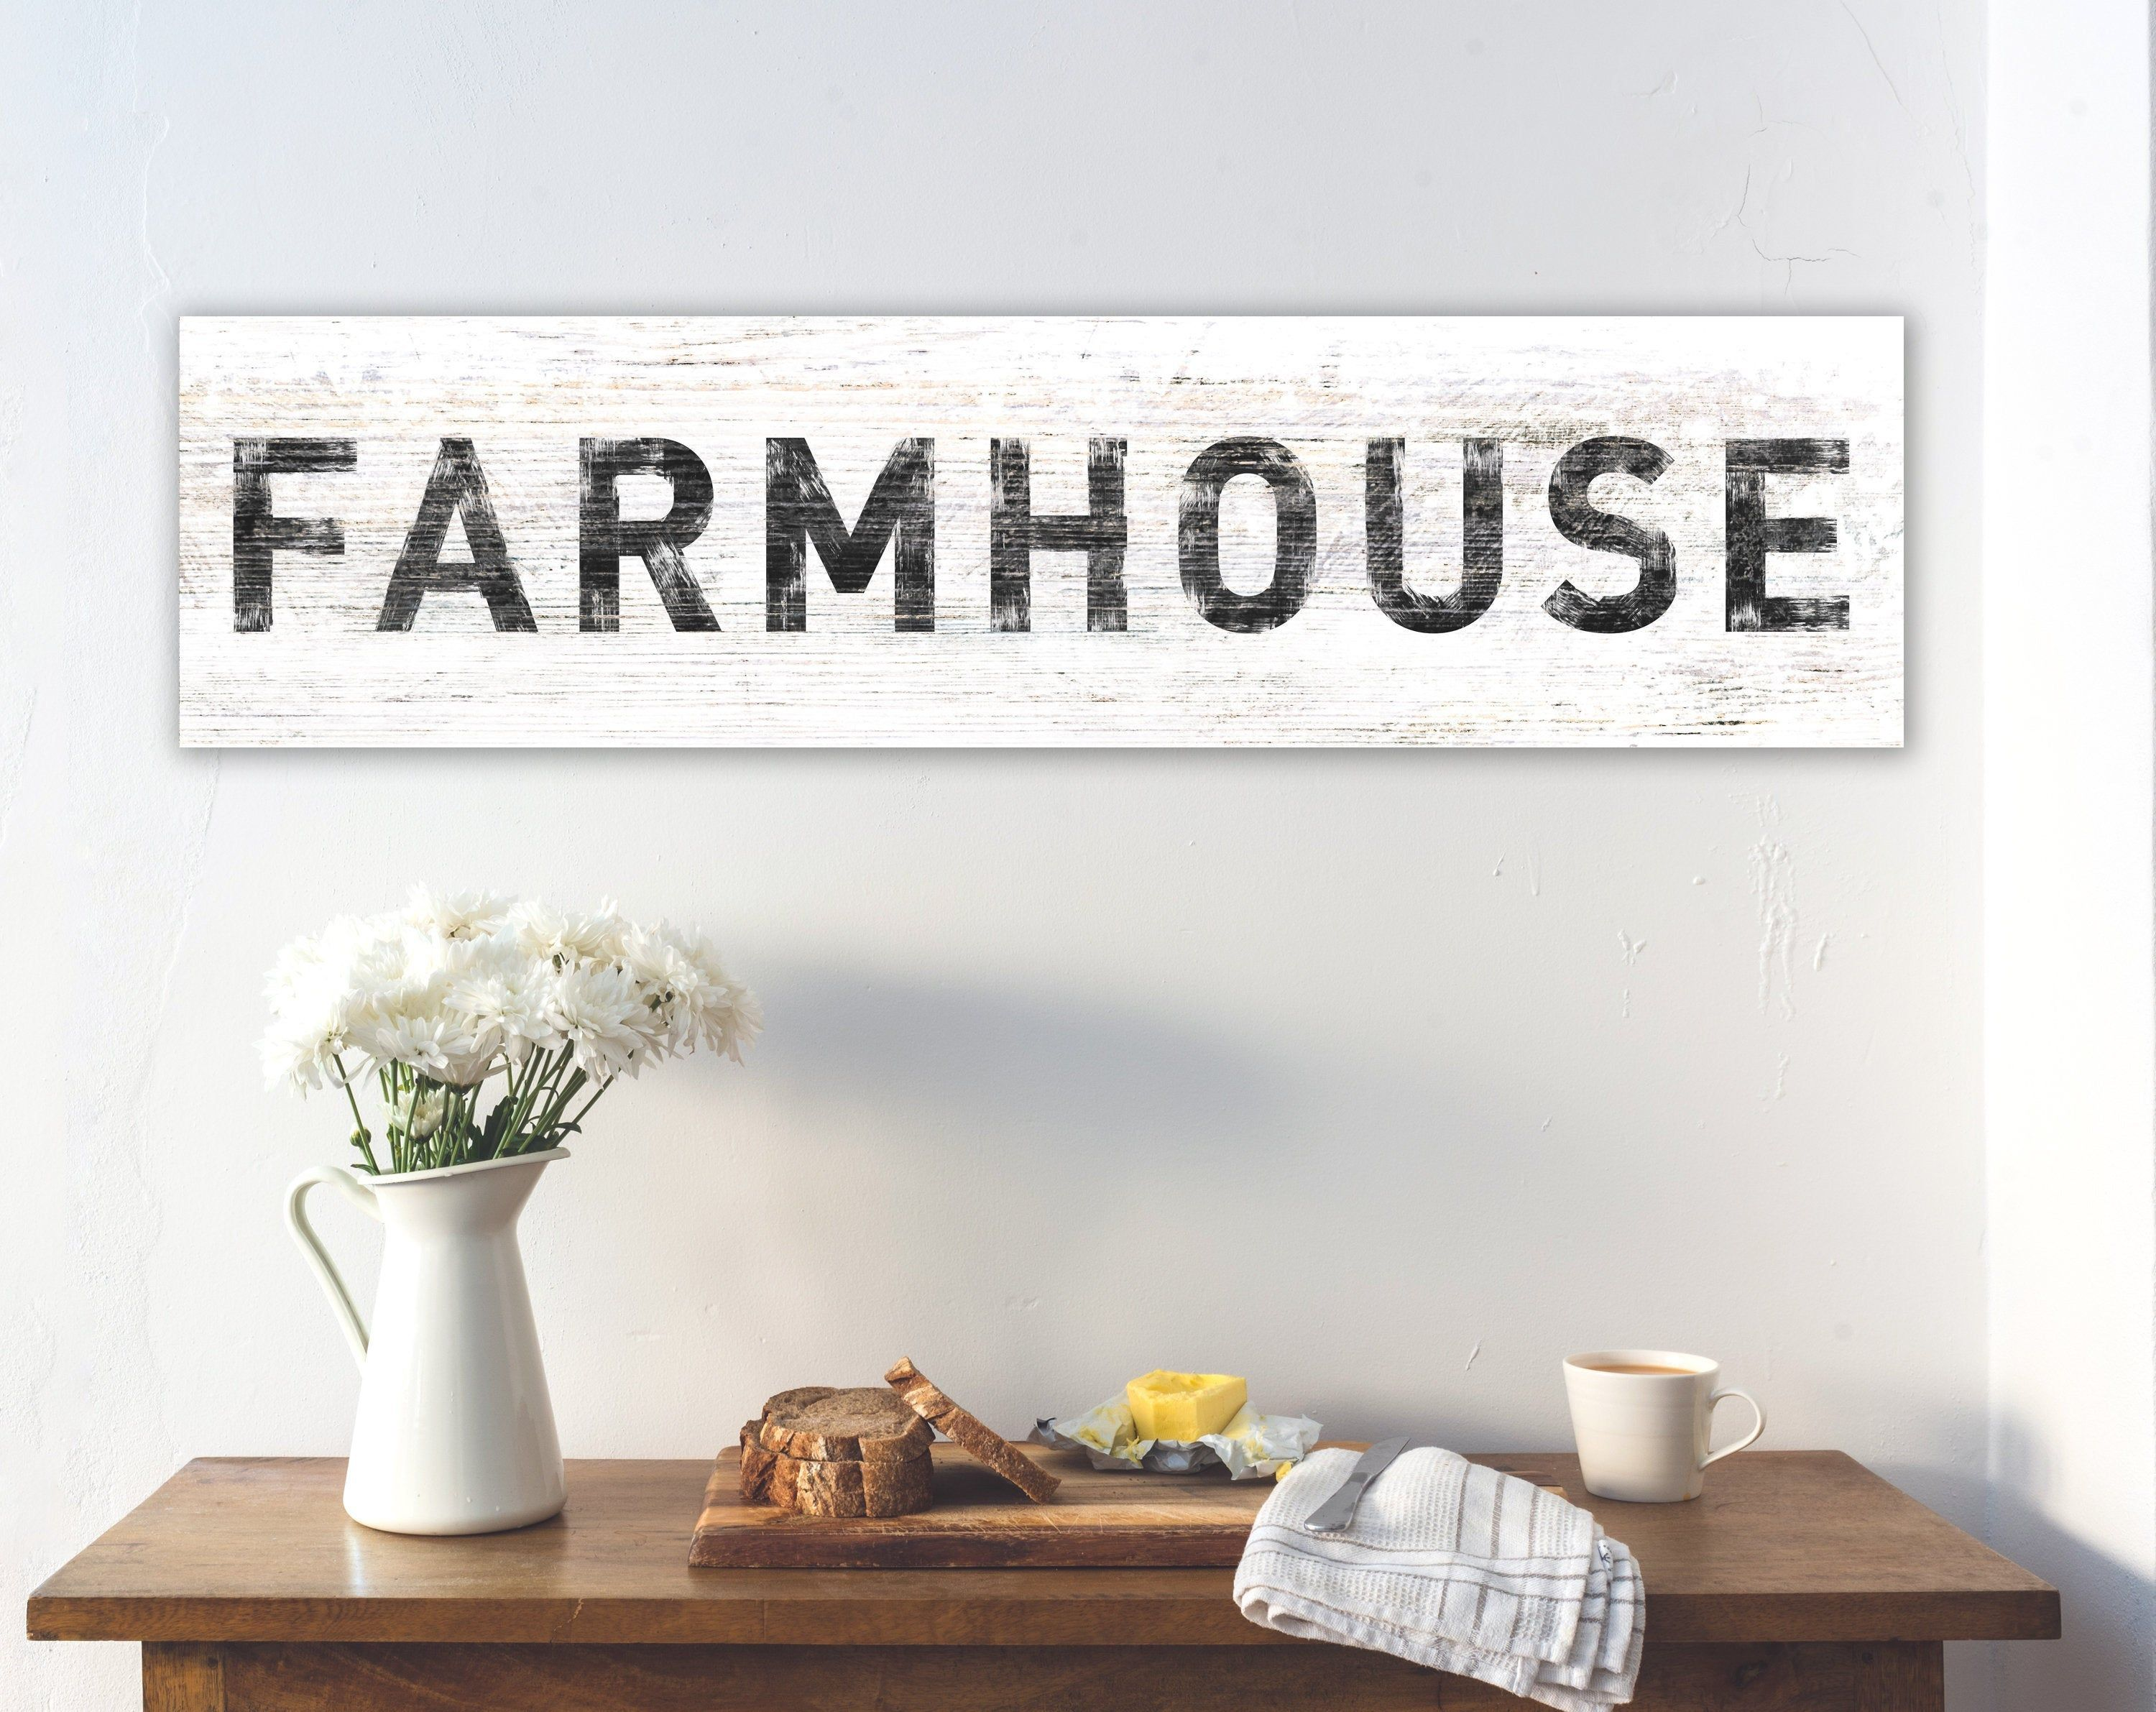 Large Farmhouse Sign Modern Farmhouse Wall Decor Rustic Etsy Farmhouse Wall Decor Rustic Wall Decor Country Dining Rooms